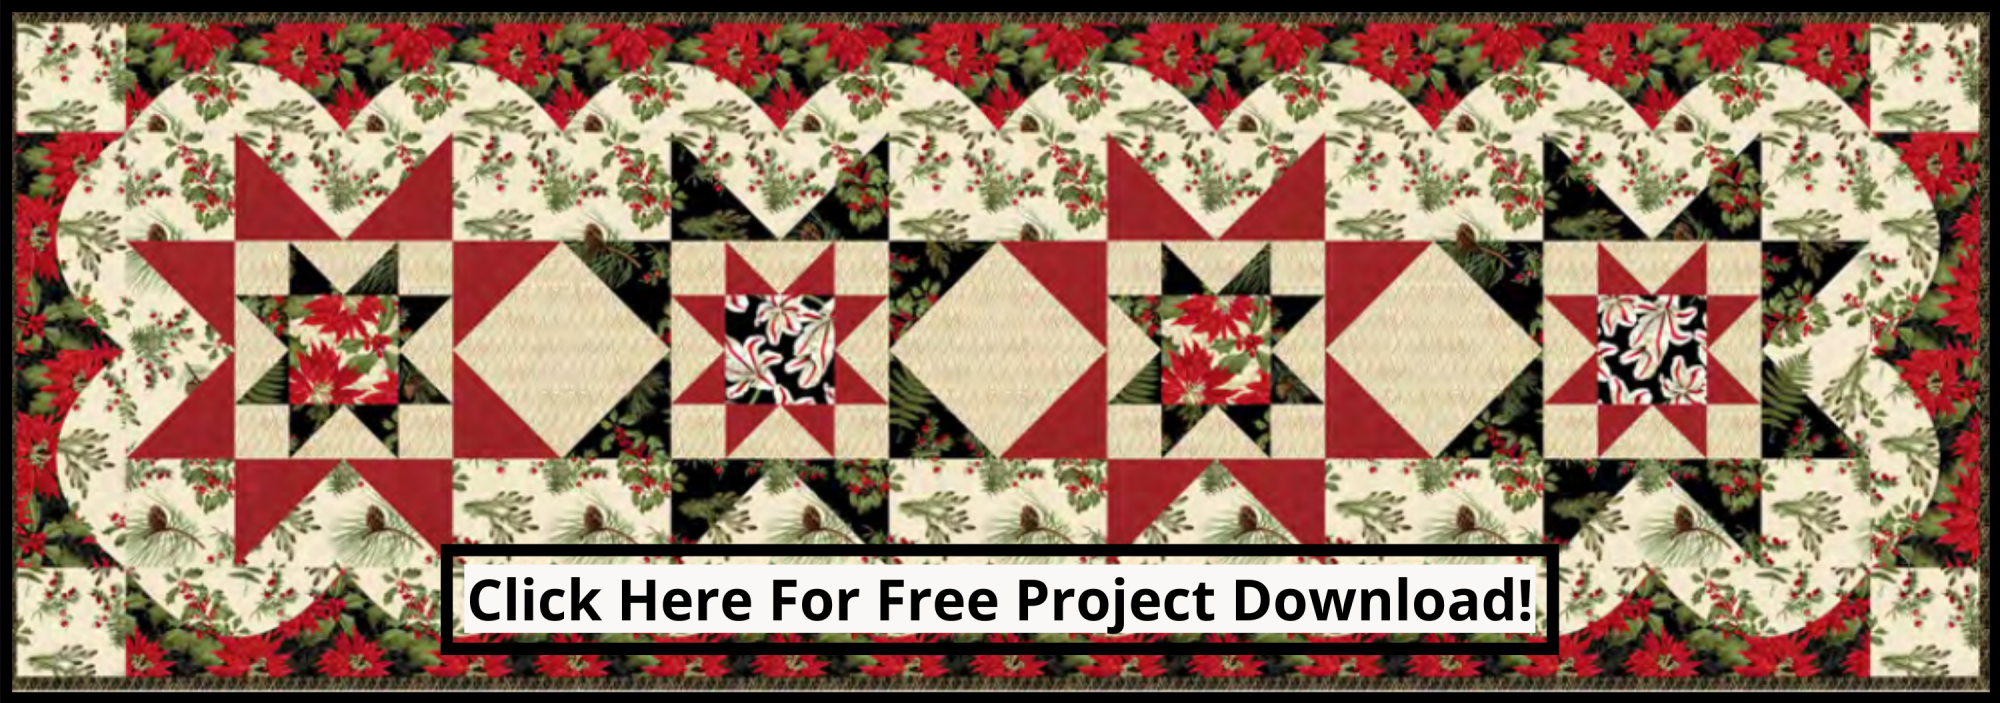 bee's quilt shop st augustine blank fabric yuletide botanica